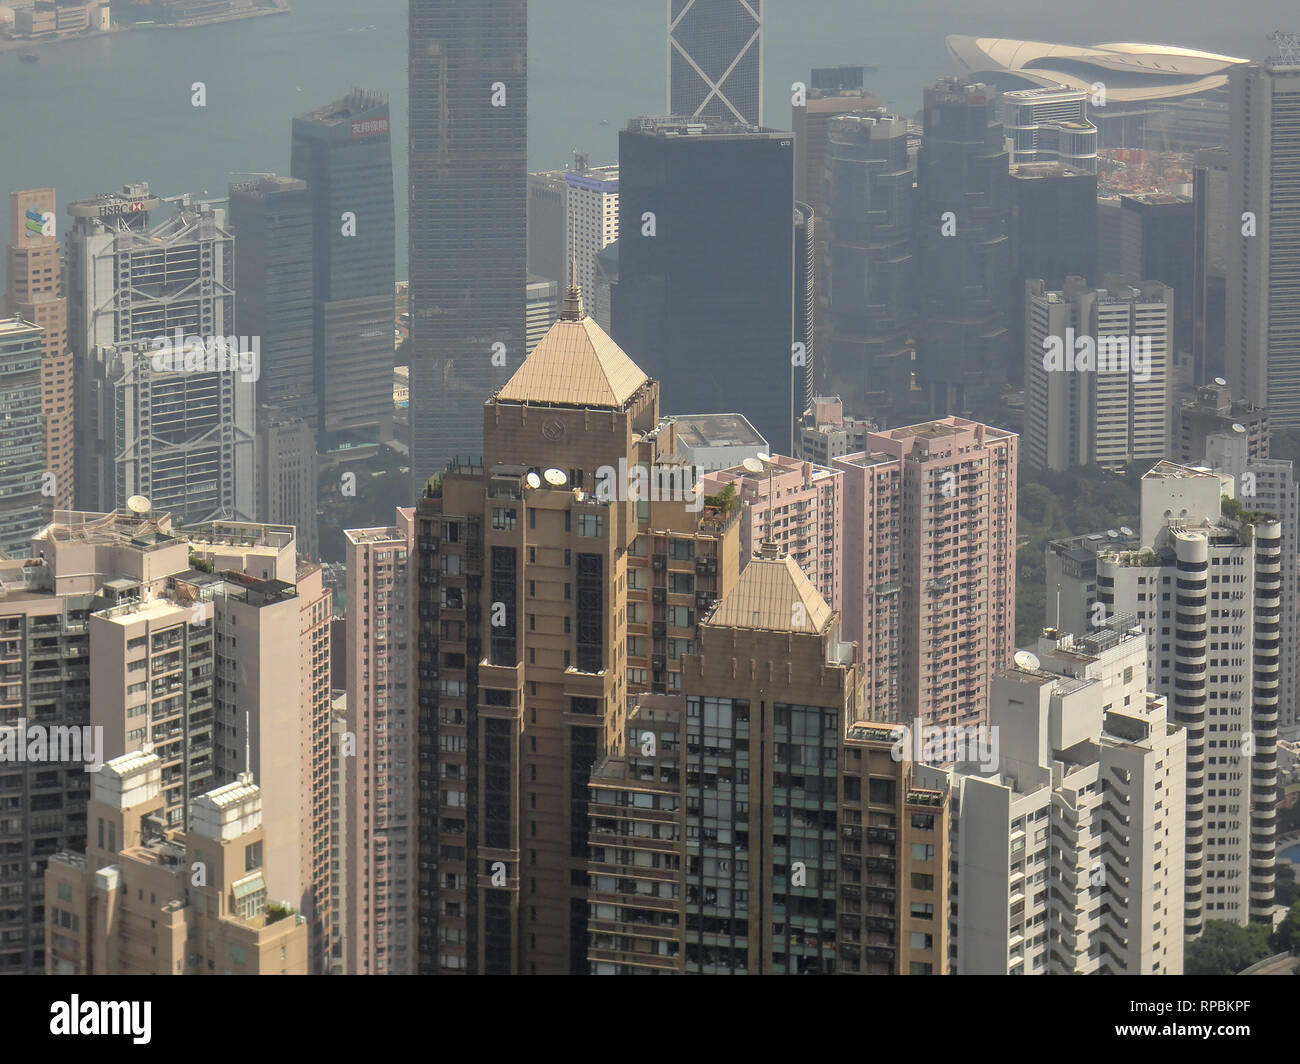 Hong Kong on a misty air polluted day. - Stock Image